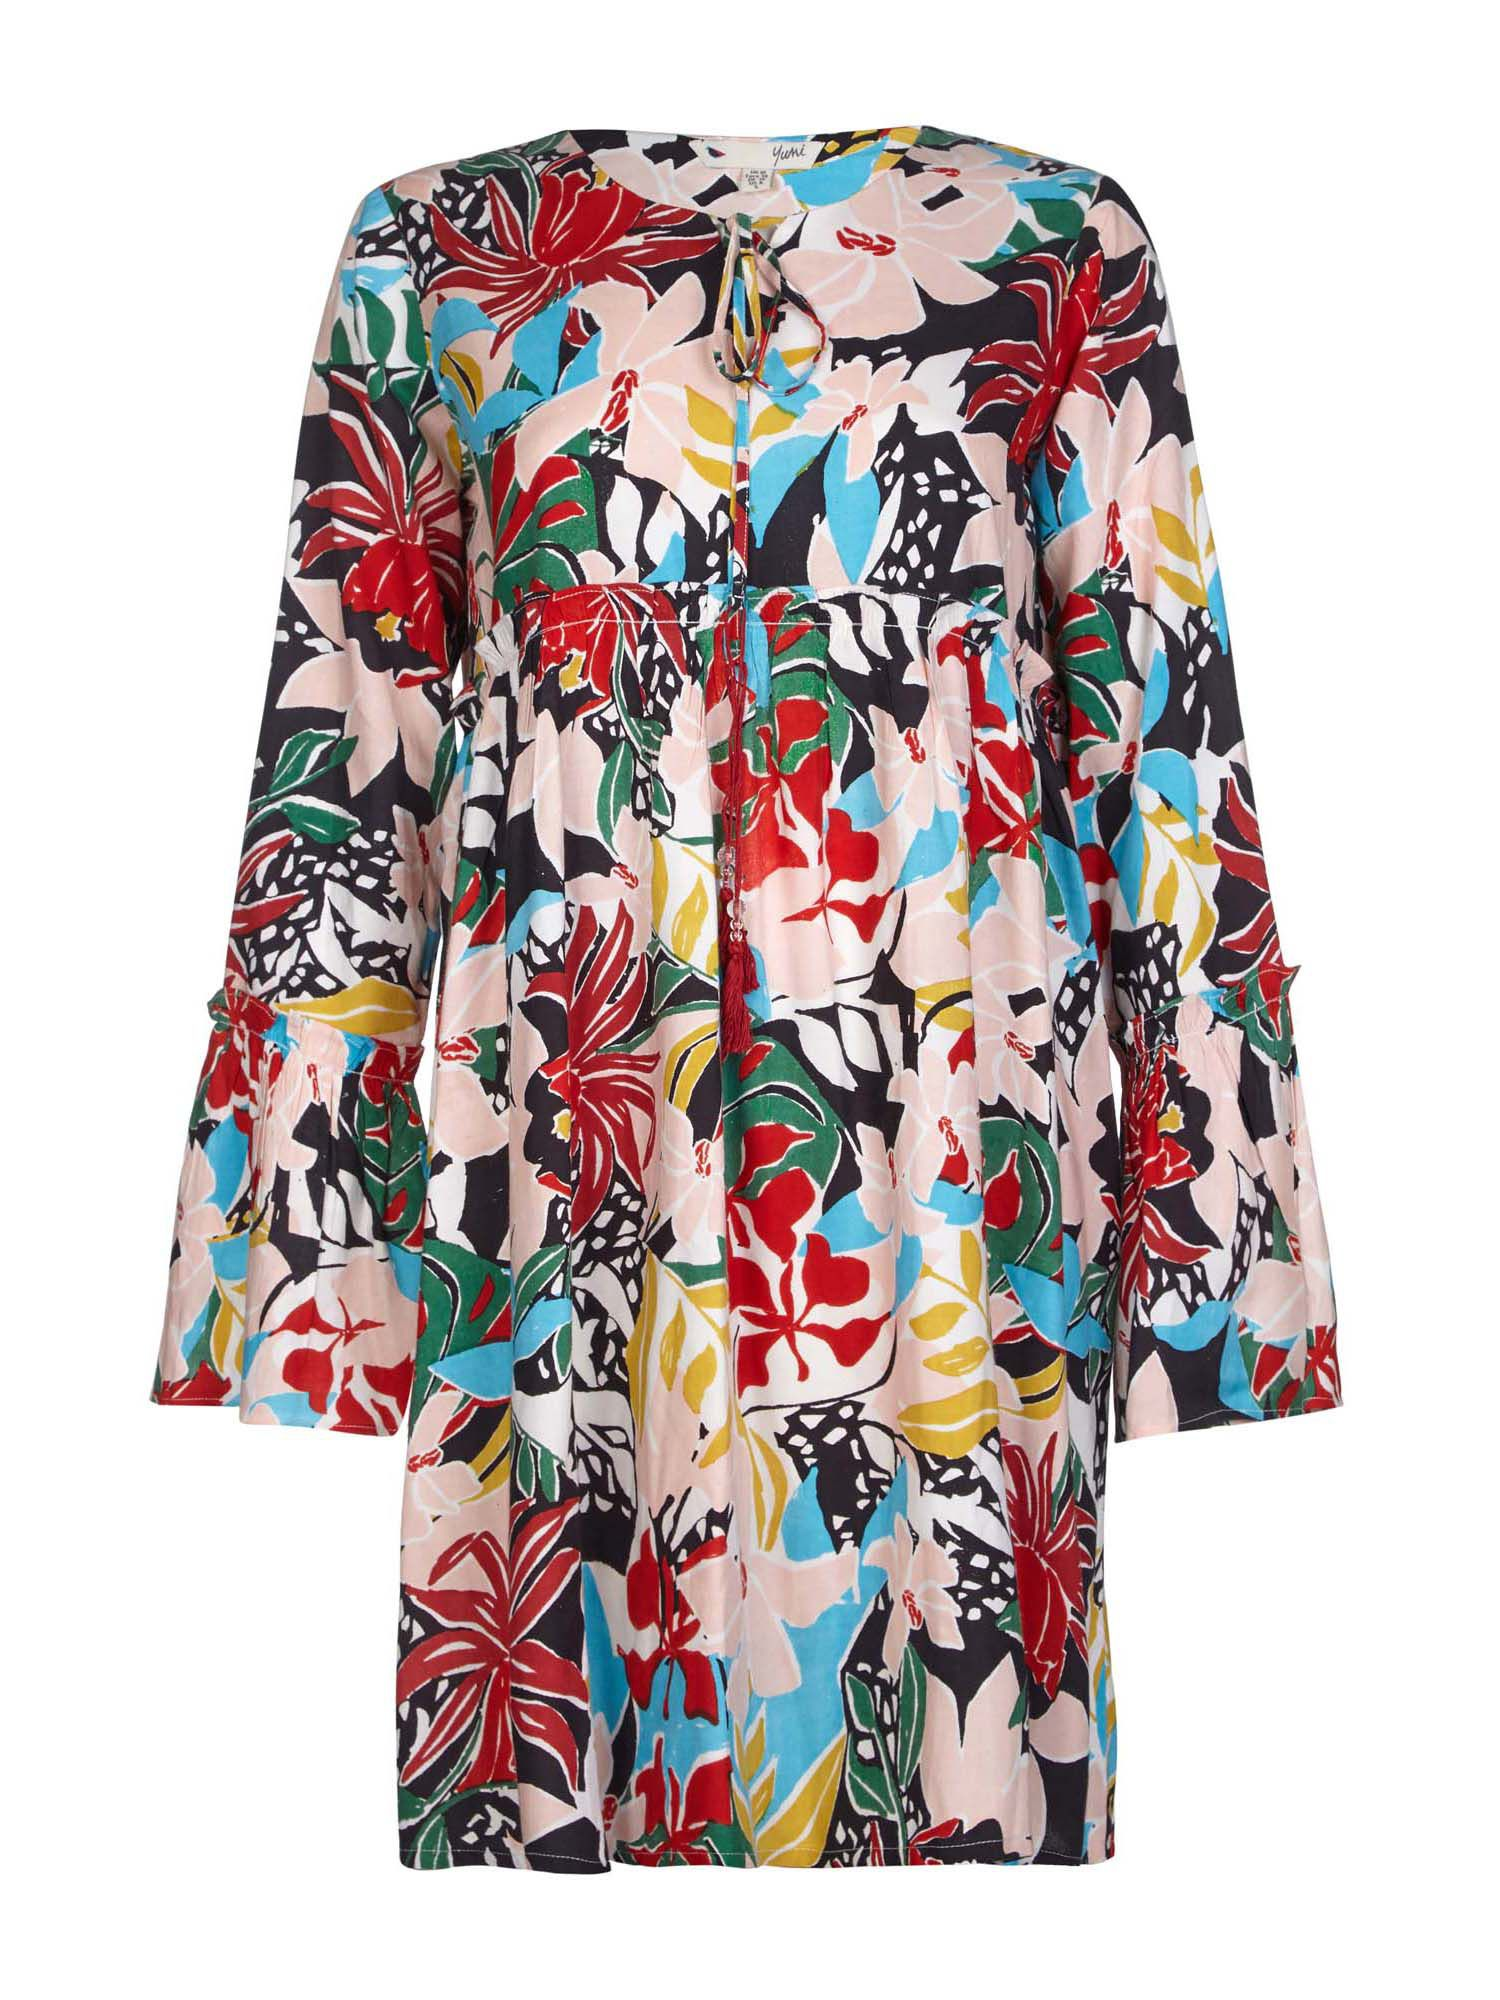 Yumi Beaded Floral Print Tunic Dress, Multi-Coloured